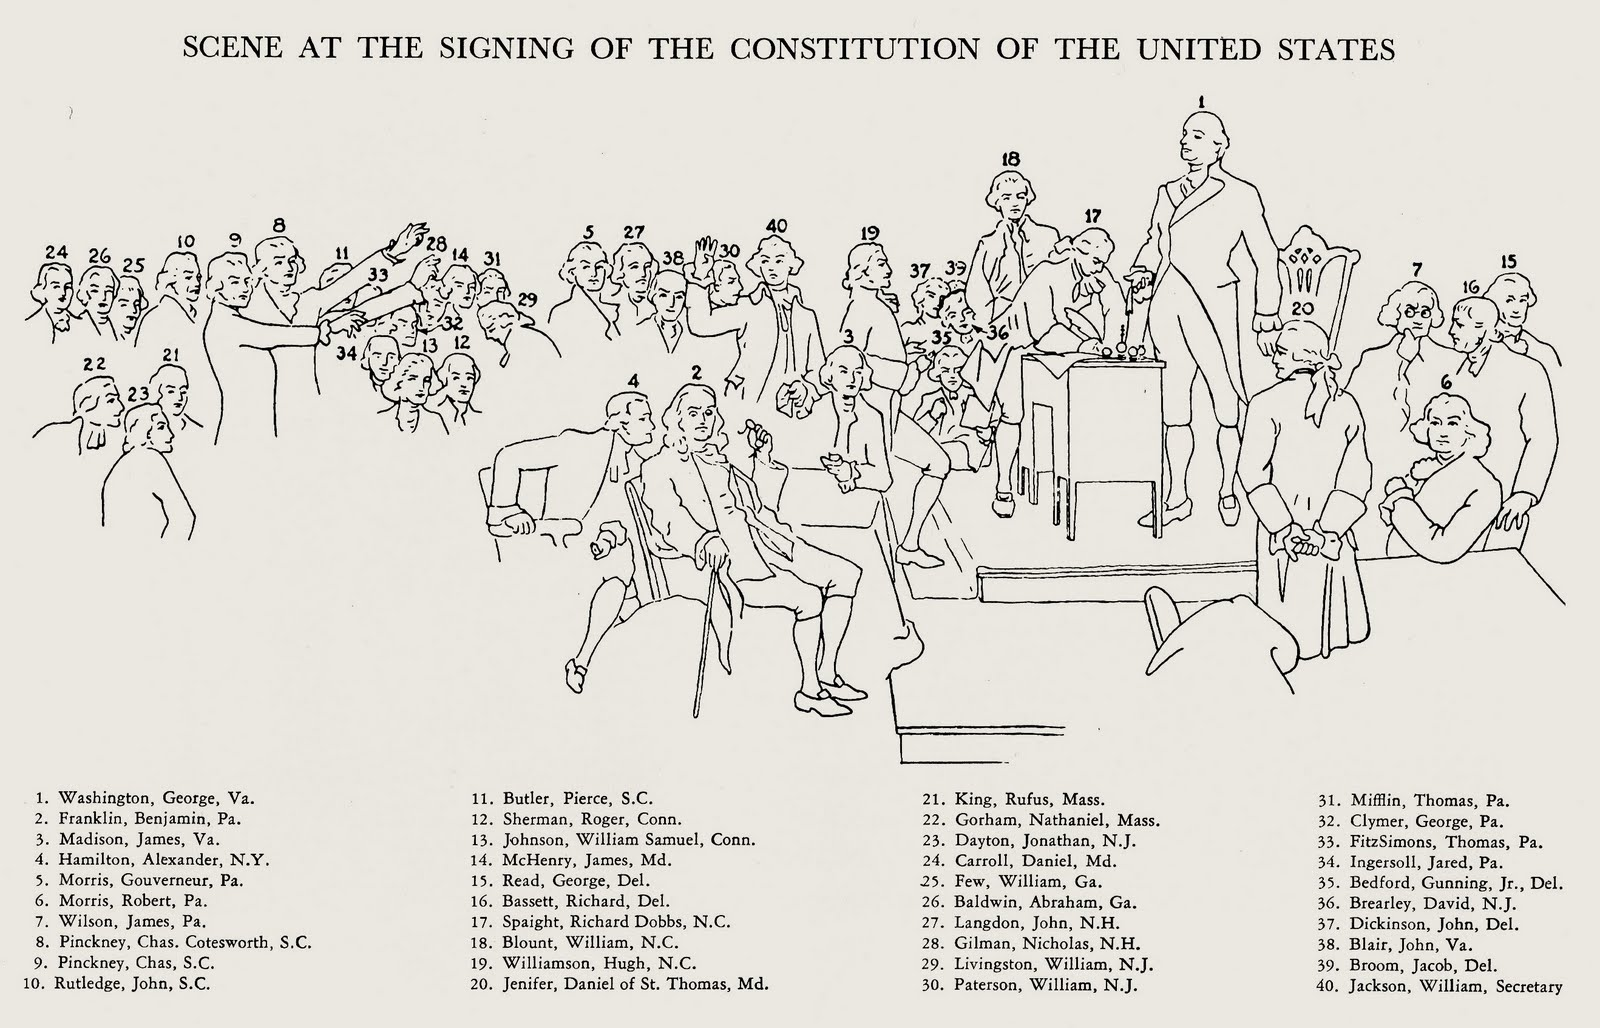 new constitution of the united states The constitution of the united states of america is the supreme law of the united states empowered with the sovereign authority of the people by the framers and the consent of the legislatures of .